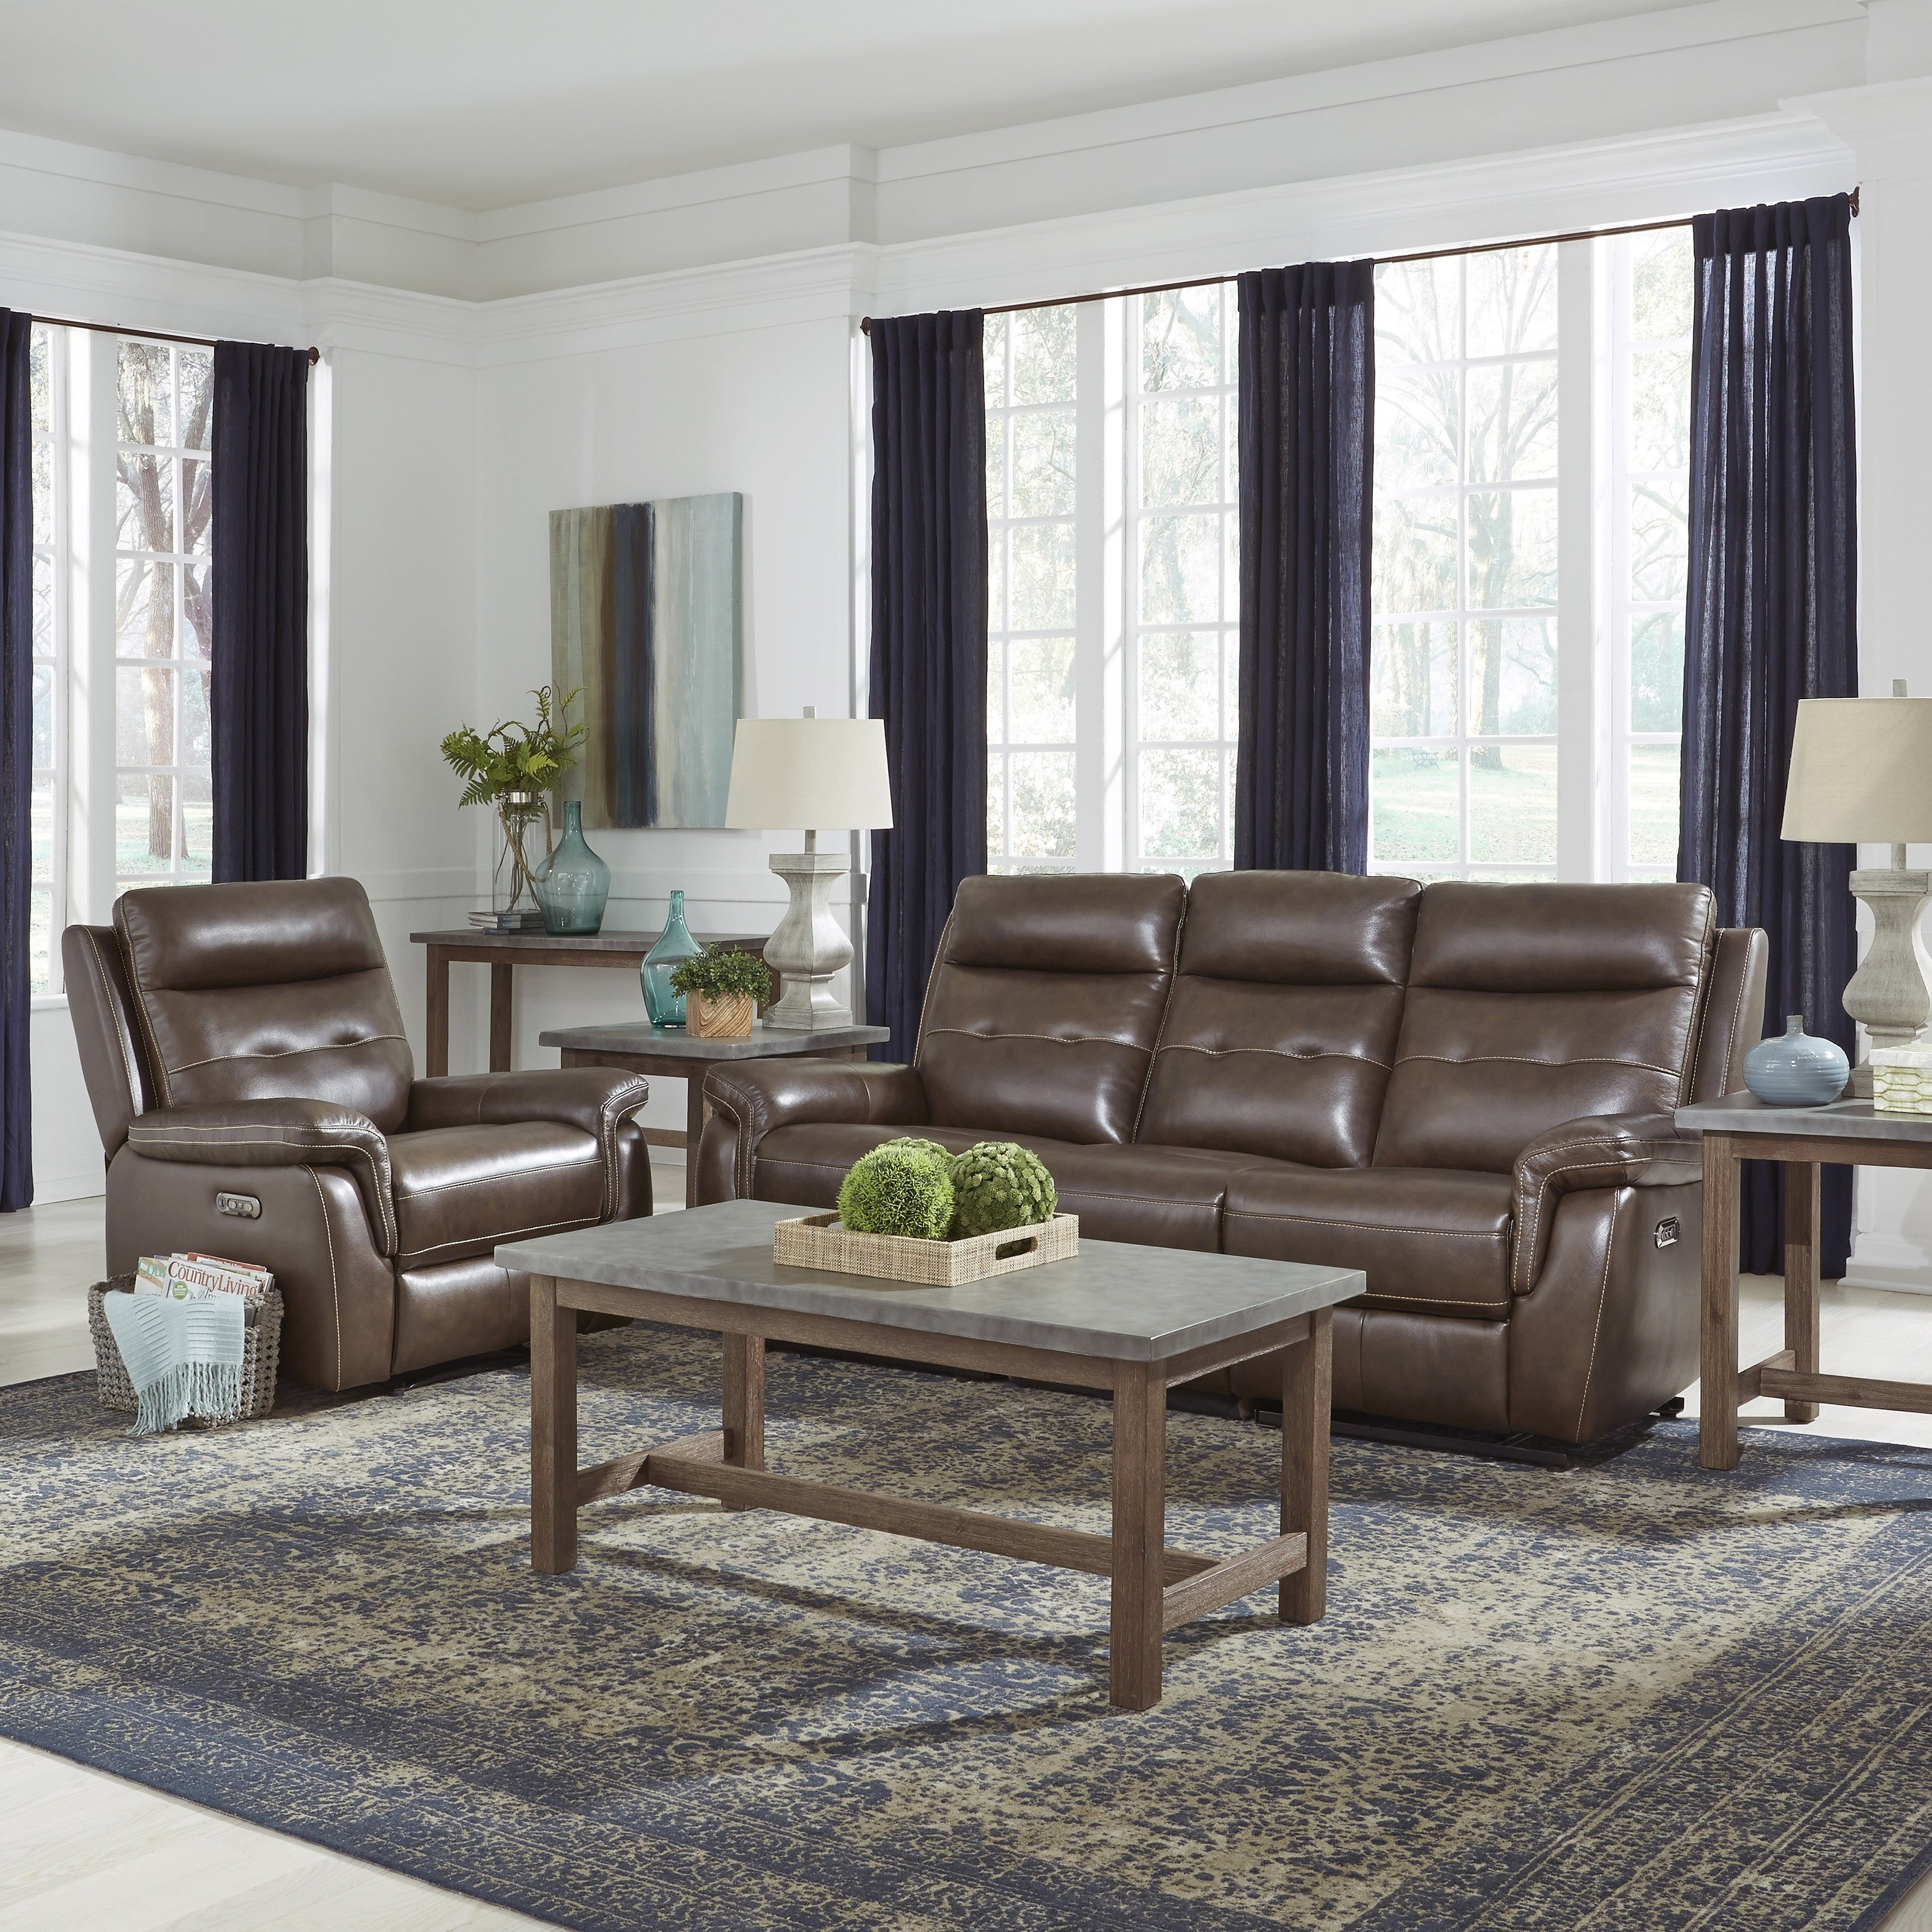 Marvelous Home Styles By Flexsteel Lux Leather Power Reclining Sofa And Recliner Creativecarmelina Interior Chair Design Creativecarmelinacom